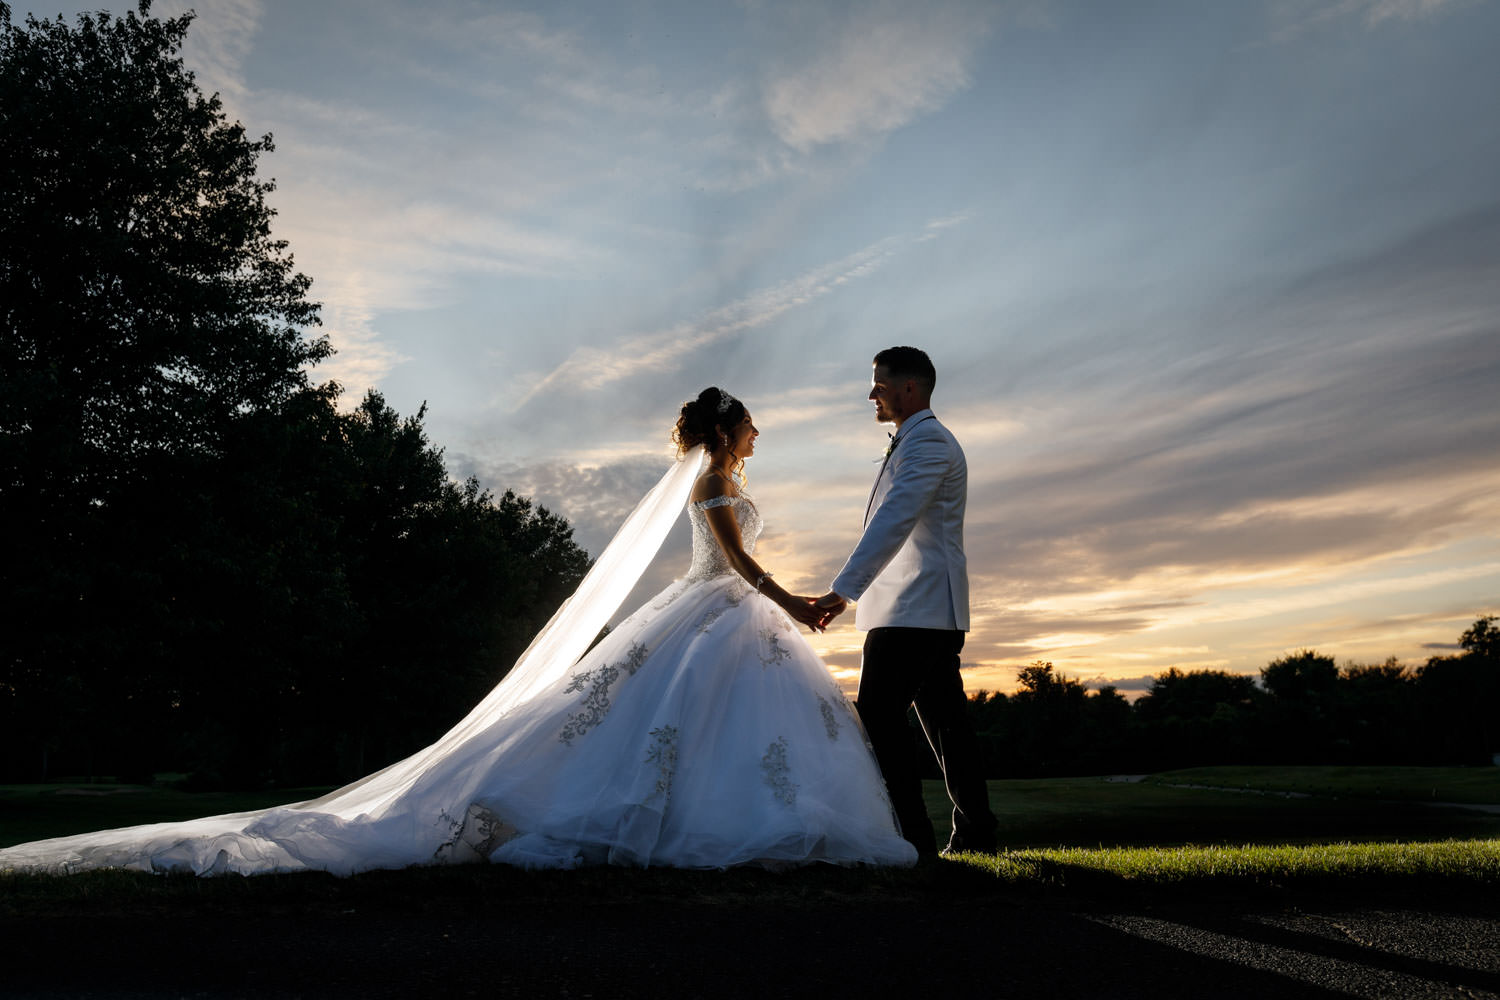 Bride and Groom sunset photo with dramatic sky in background